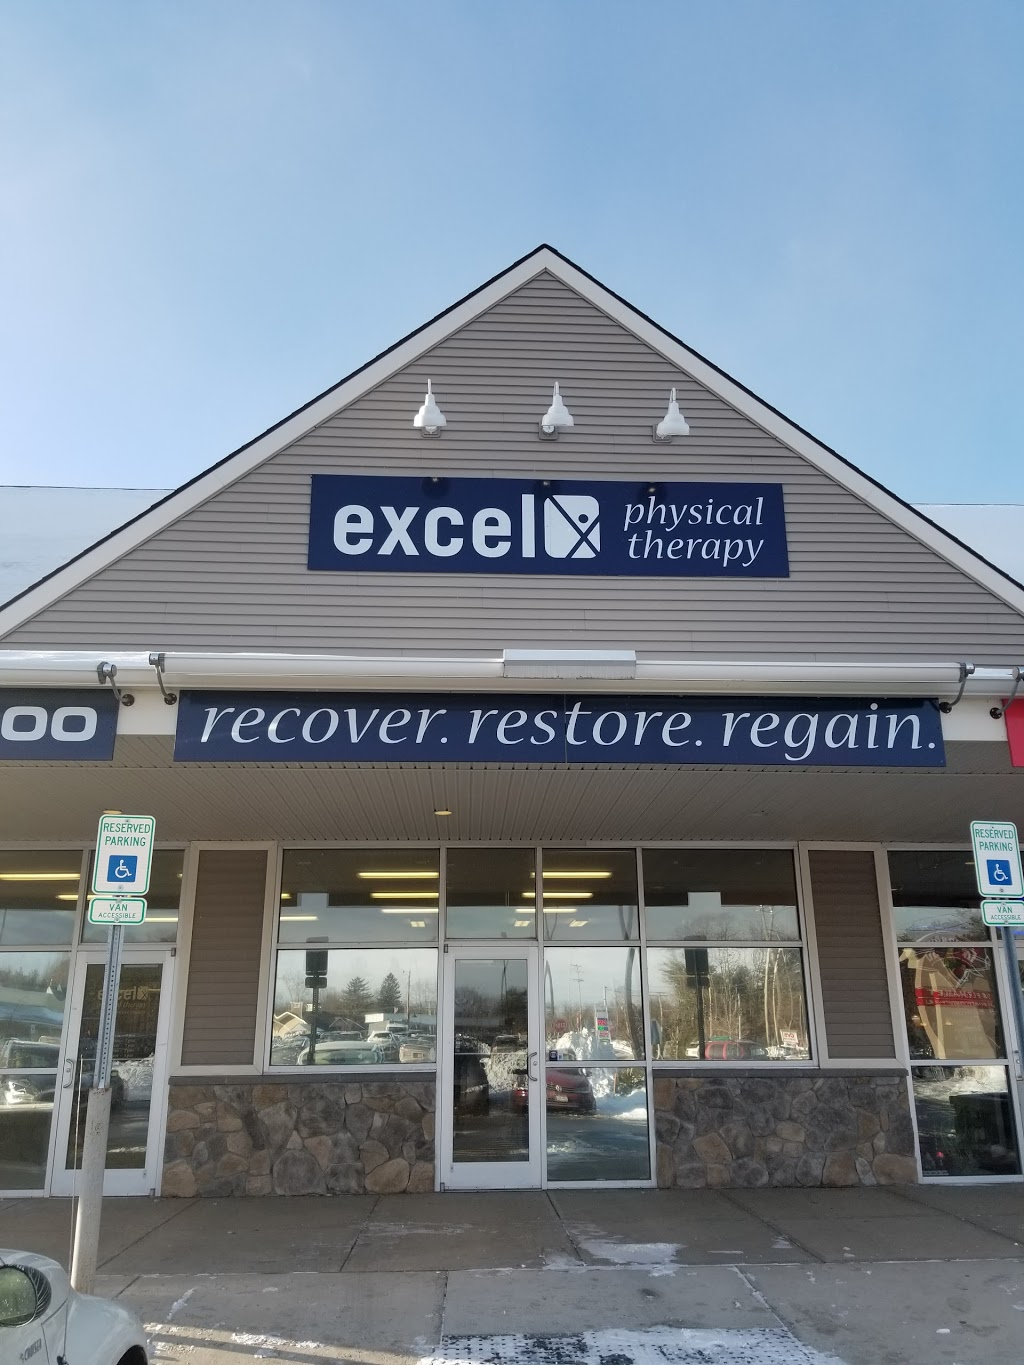 Excel Physical Therapy - physiotherapist  | Photo 1 of 2 | Address: 247 Main St Unit 2, Cairo, NY 12413, USA | Phone: (518) 622-2900